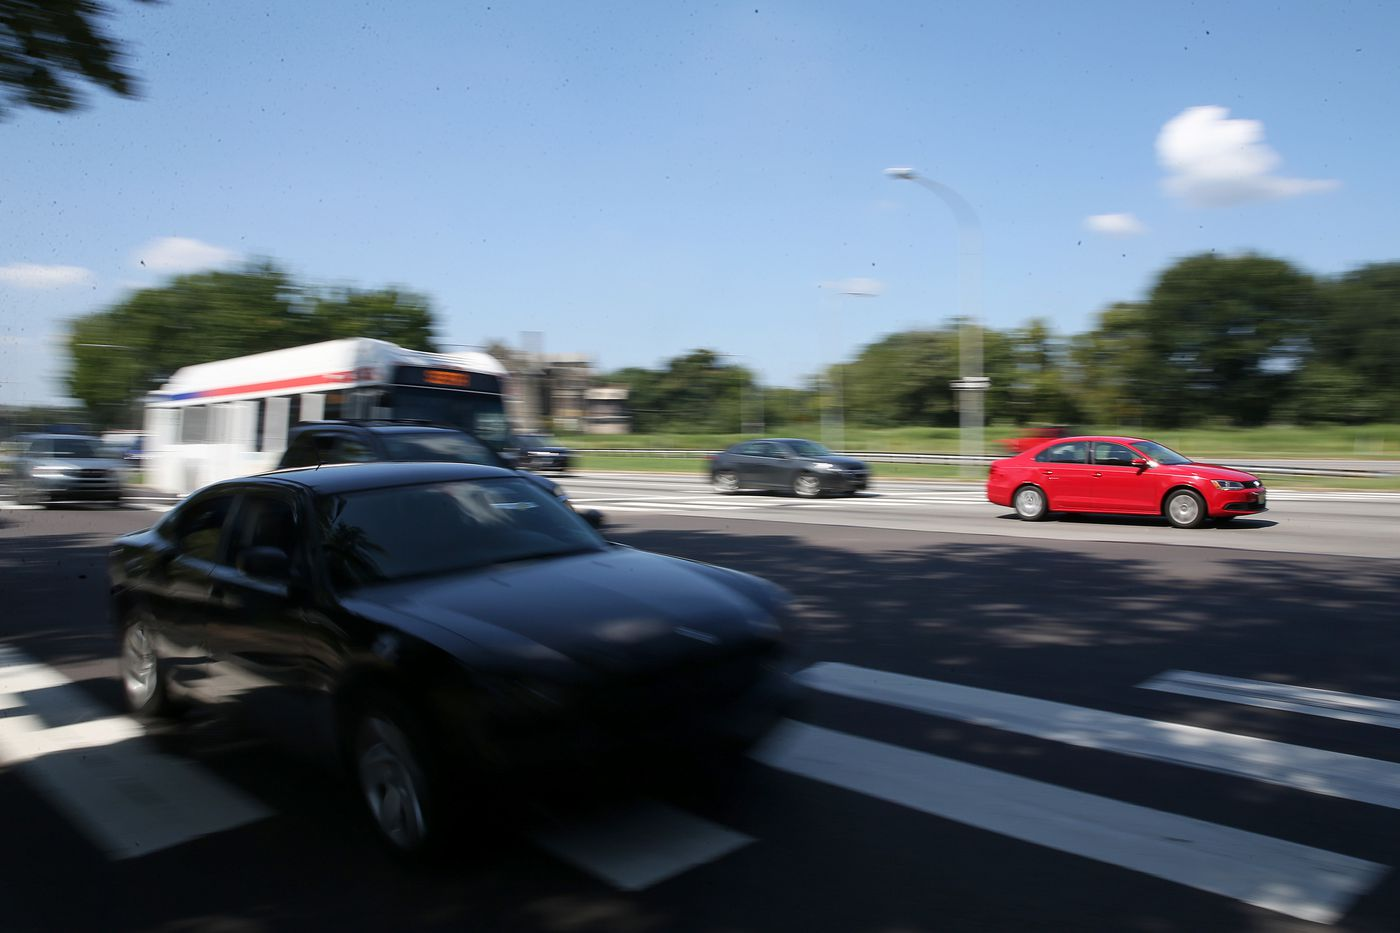 Speed cameras are likely coming soon to Roosevelt Boulevard